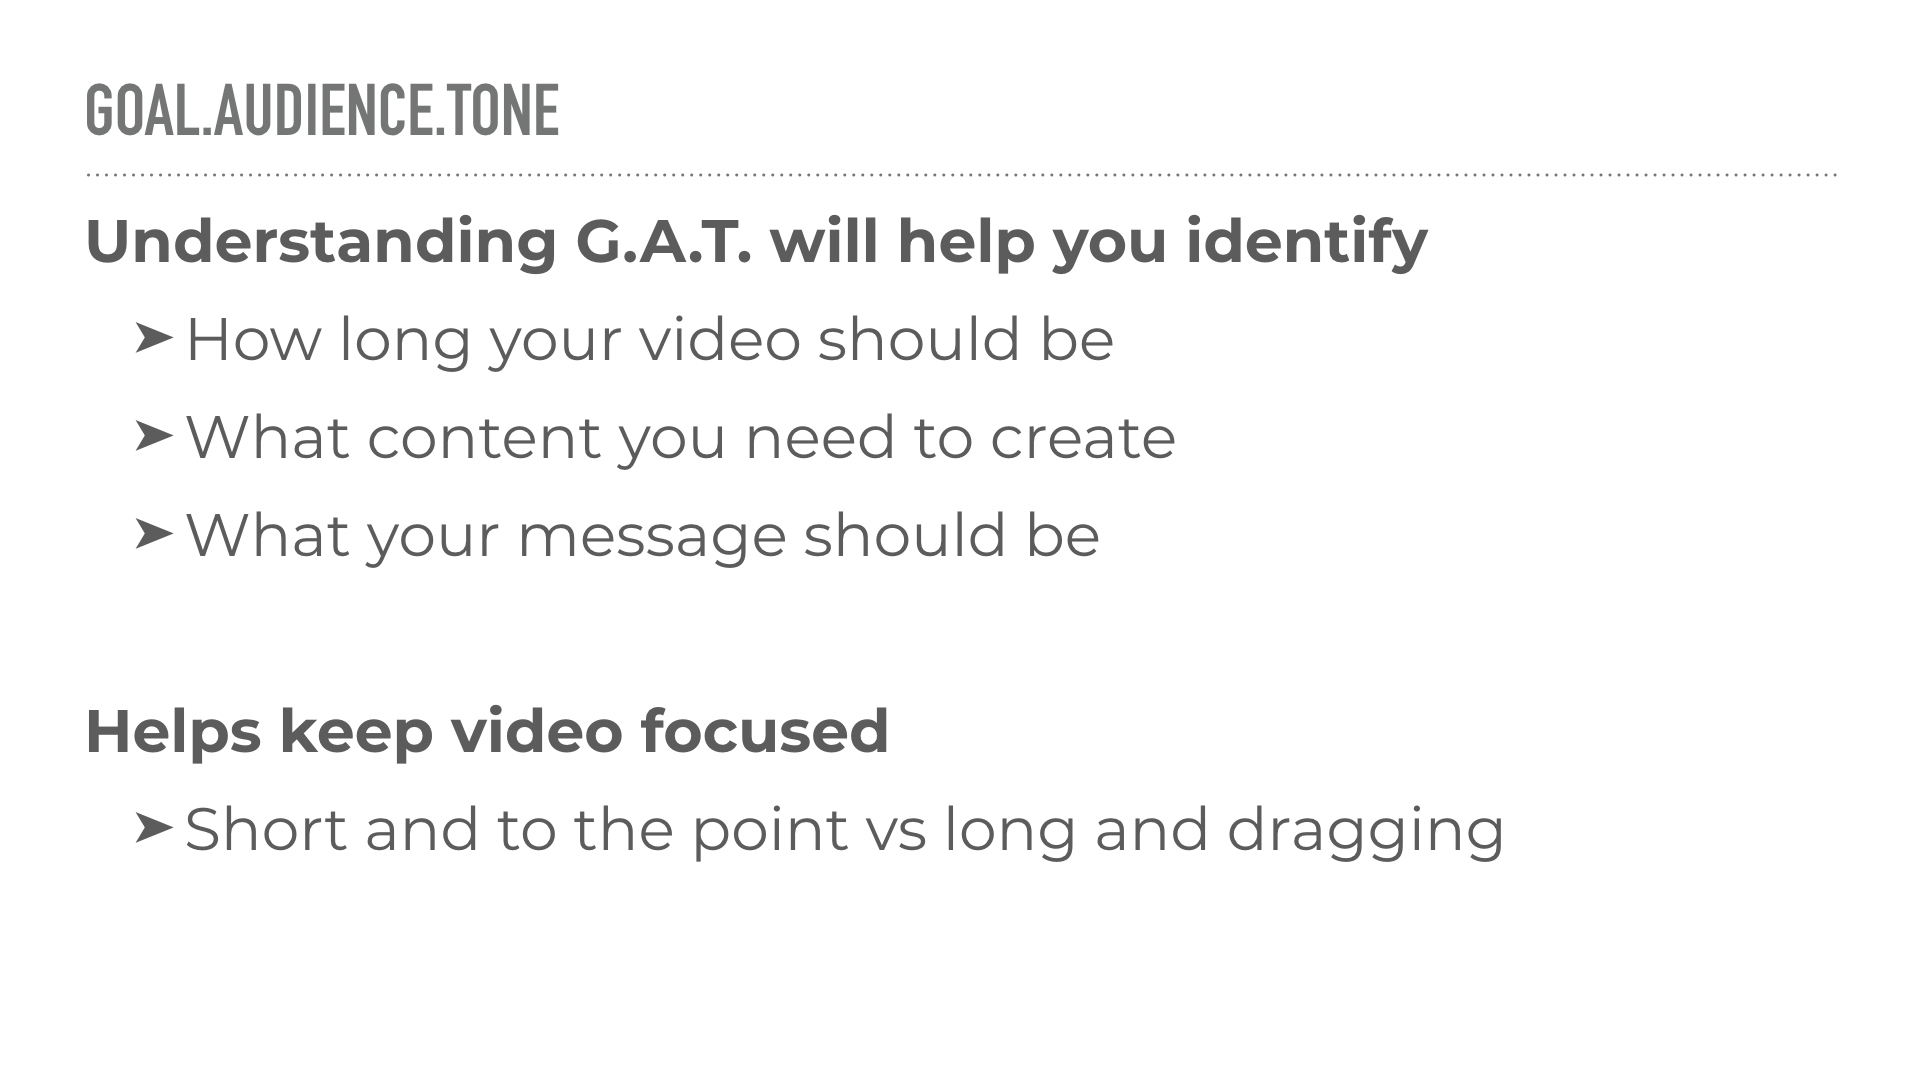 GAMM - How to Use Video.010.jpeg